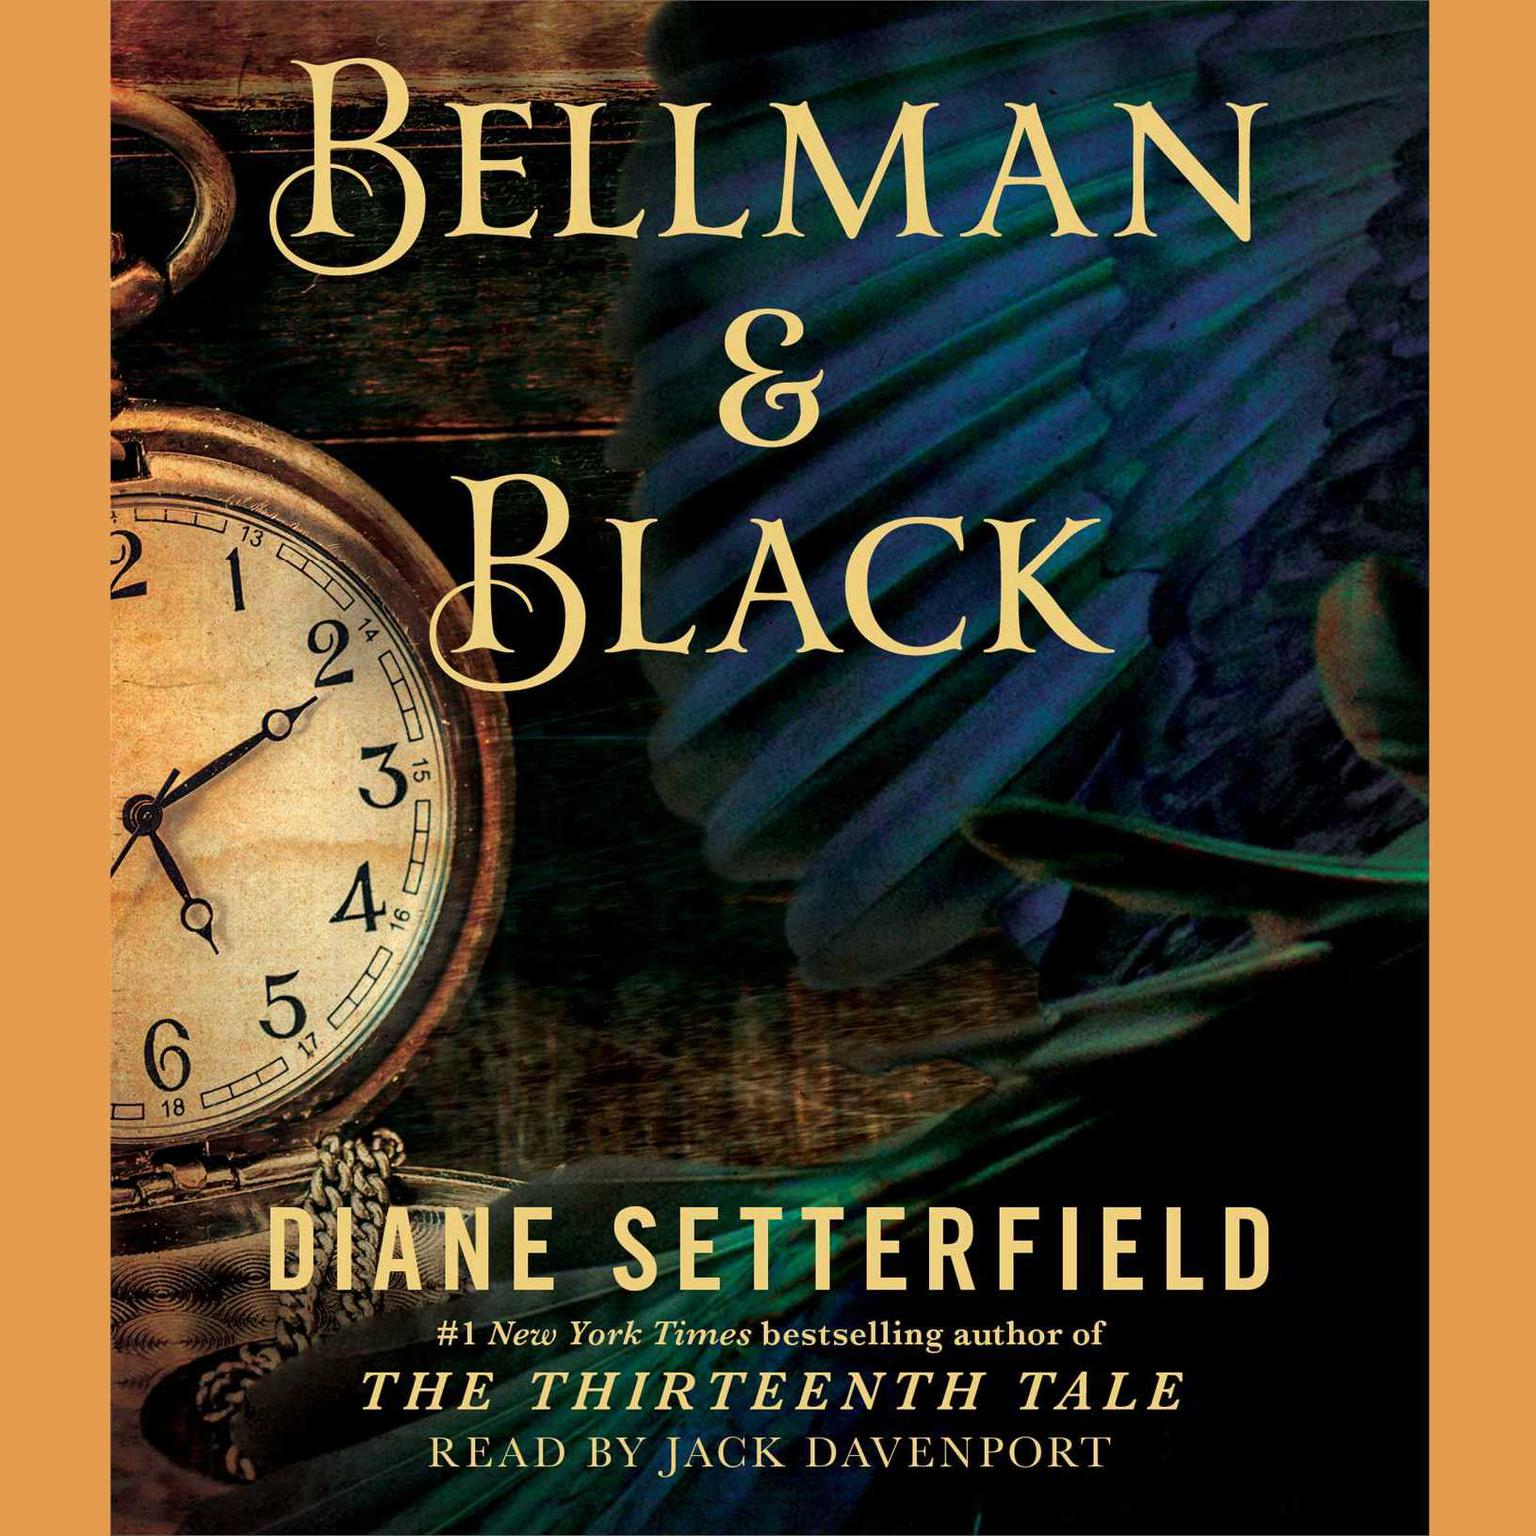 Printable Bellman & Black: A Ghost Story Audiobook Cover Art